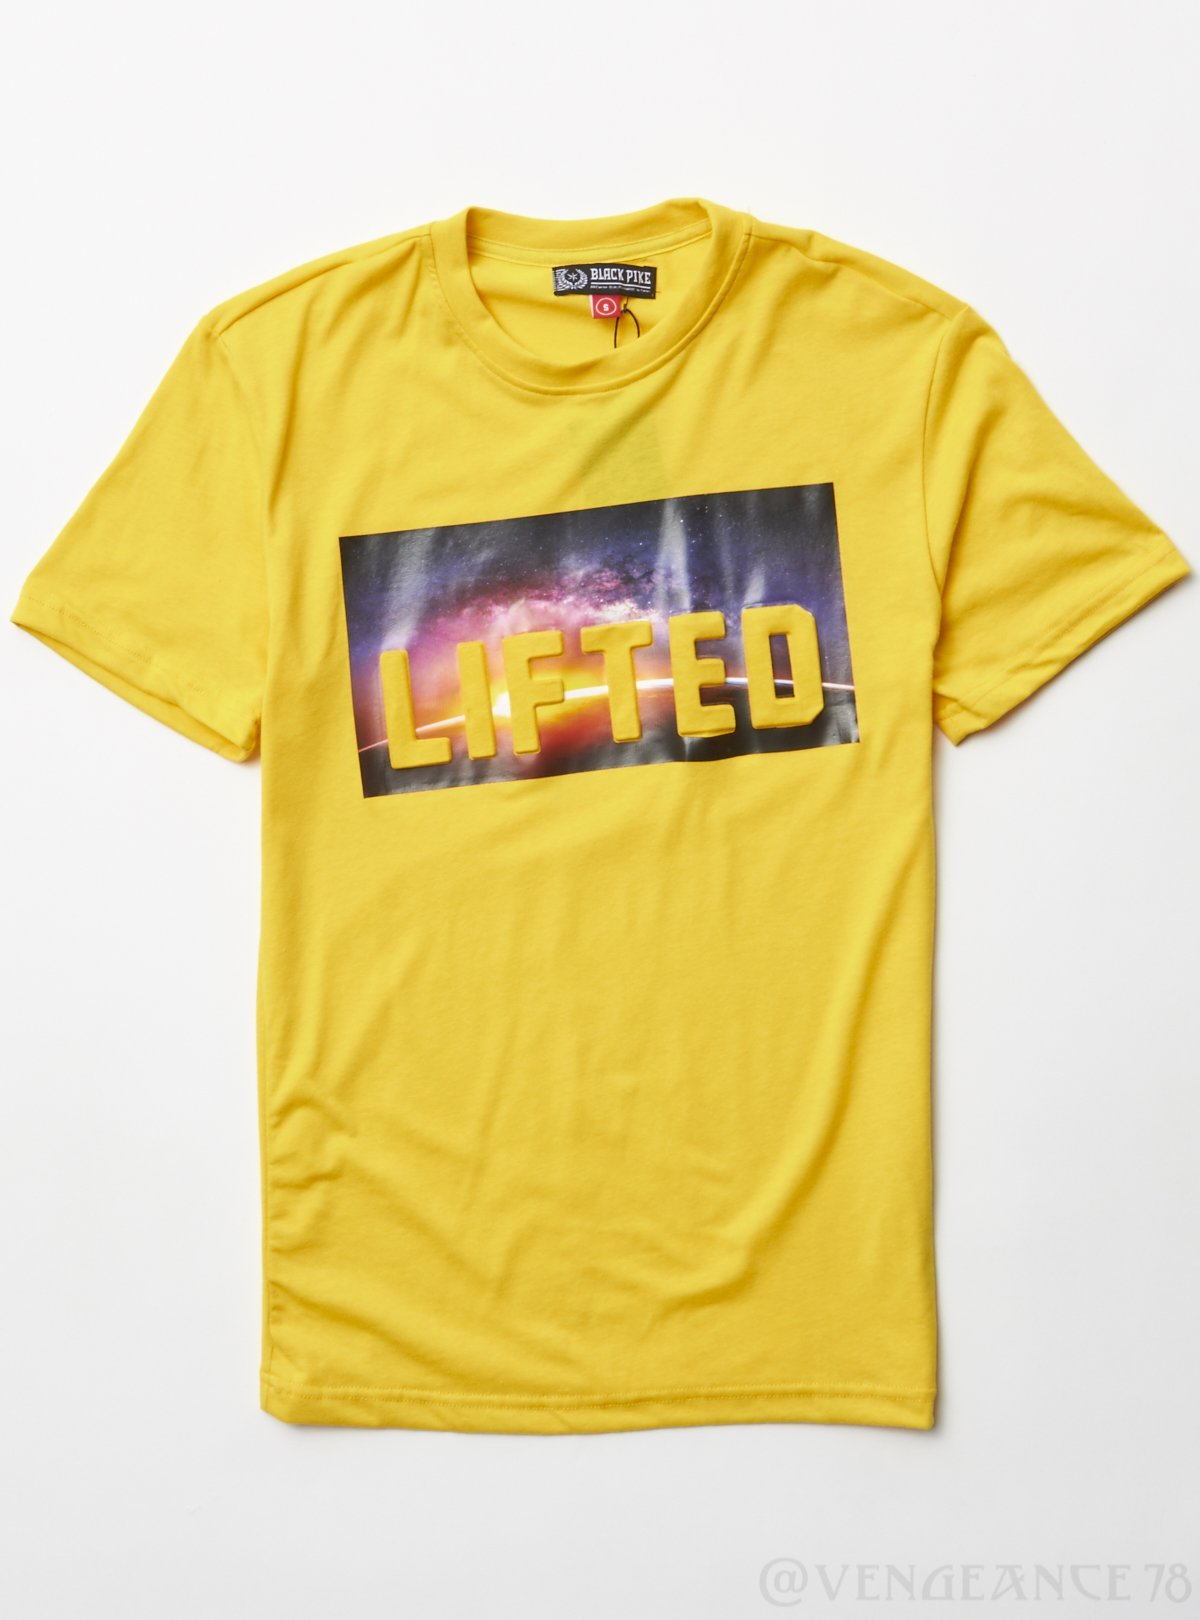 Black Pike T-Shirt - LIFTED - Yellow - BS0412